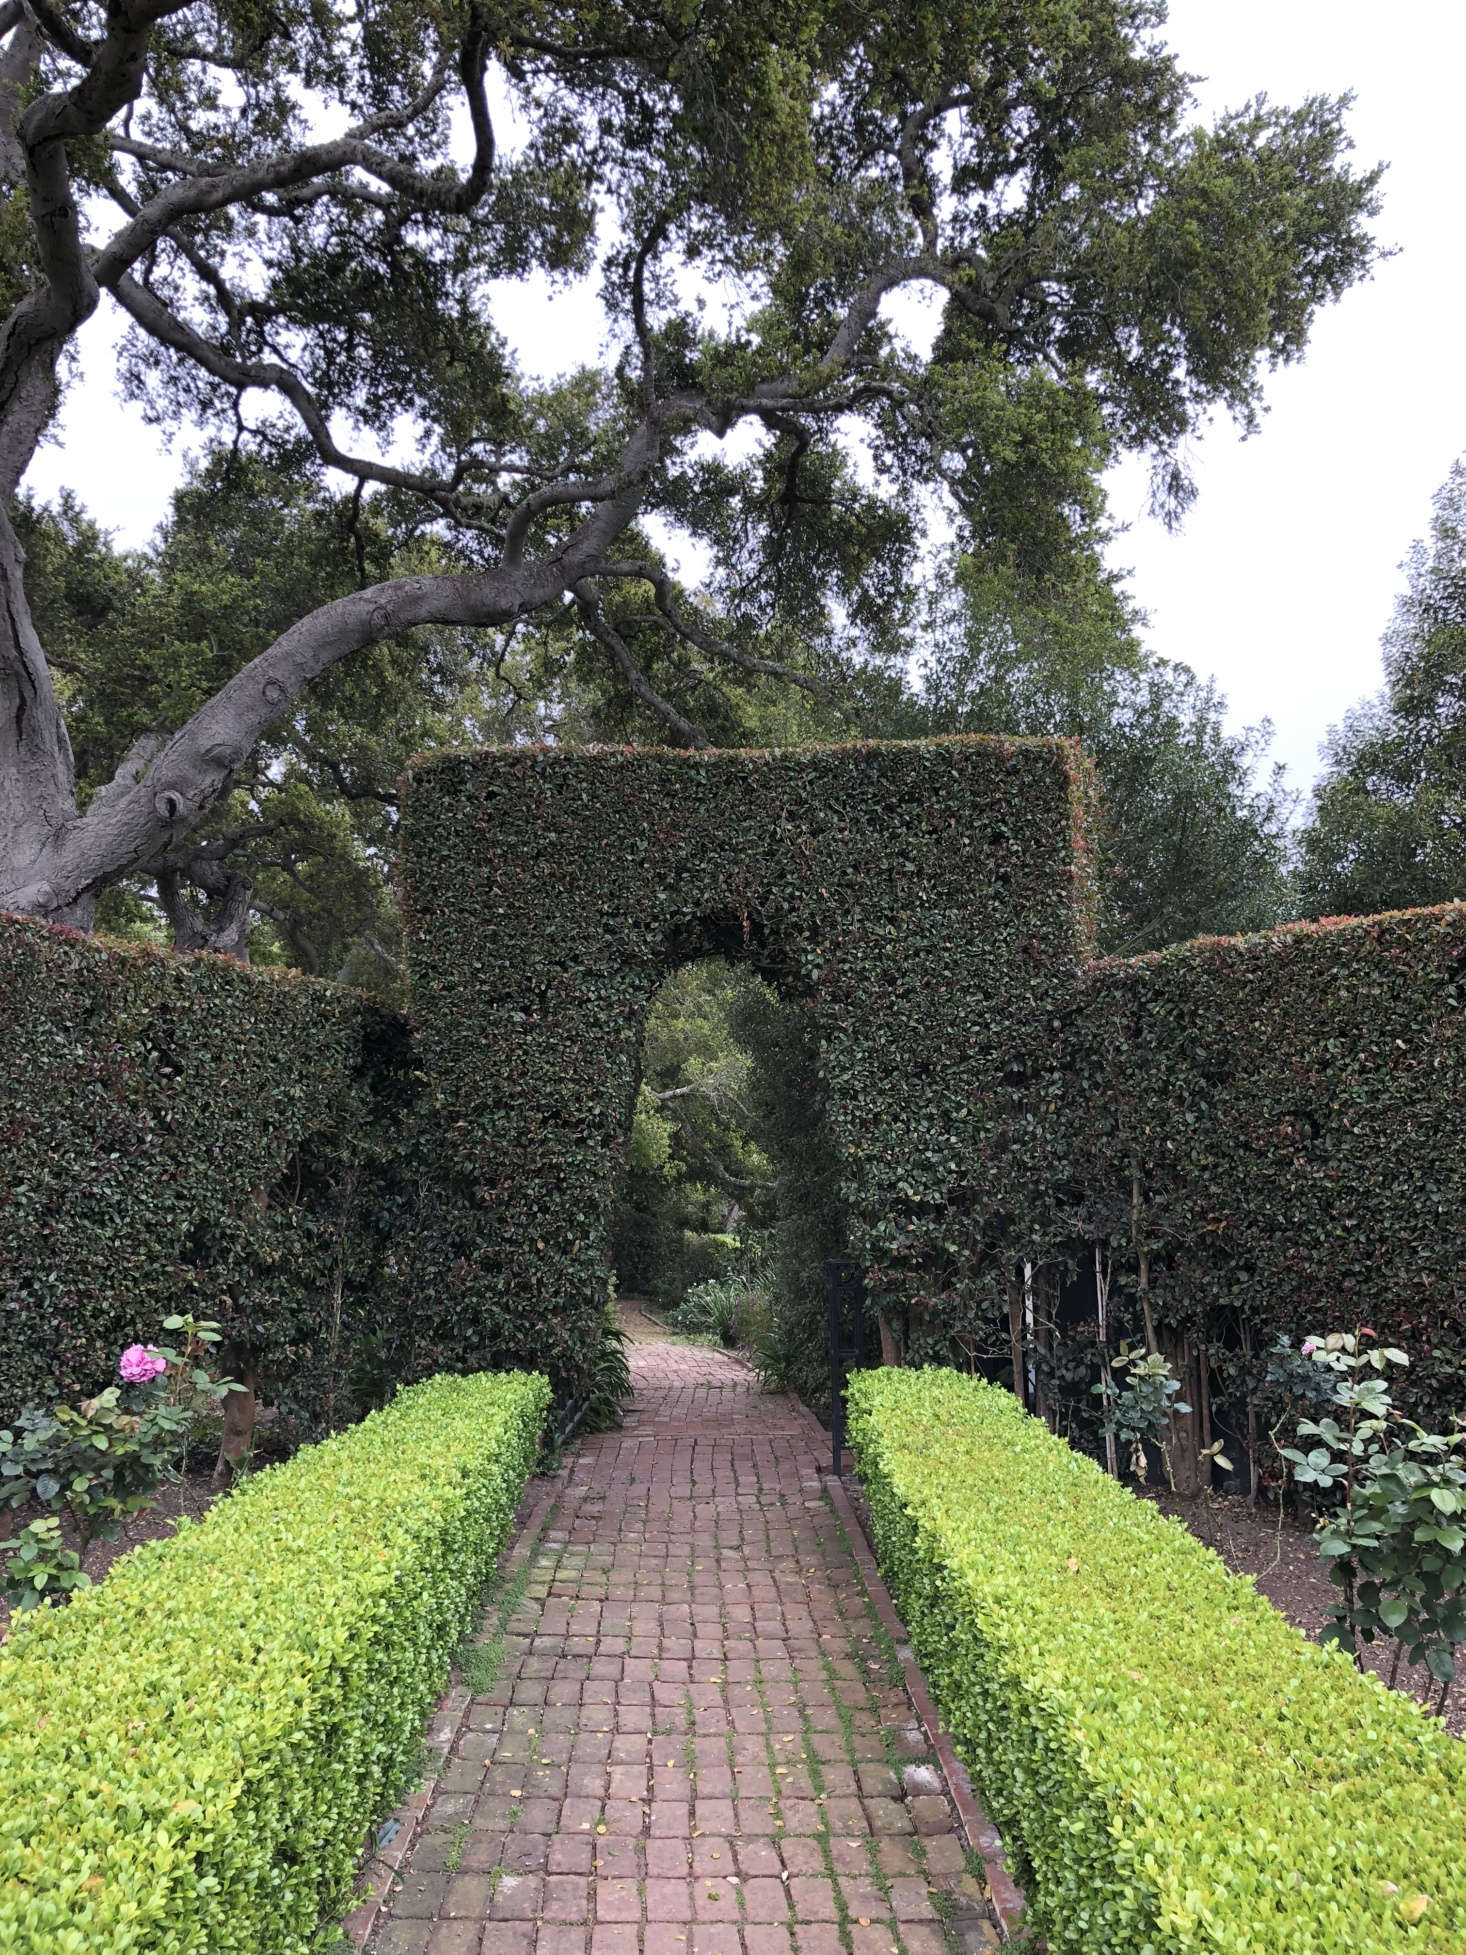 The brick paths are also original; Sosa and team repaired them but opted not to alter their well-worn charm. Here, they wind through the property and through Secret Garden–esque archways in the hedges. Photograph courtesy of Roberto Sosa.